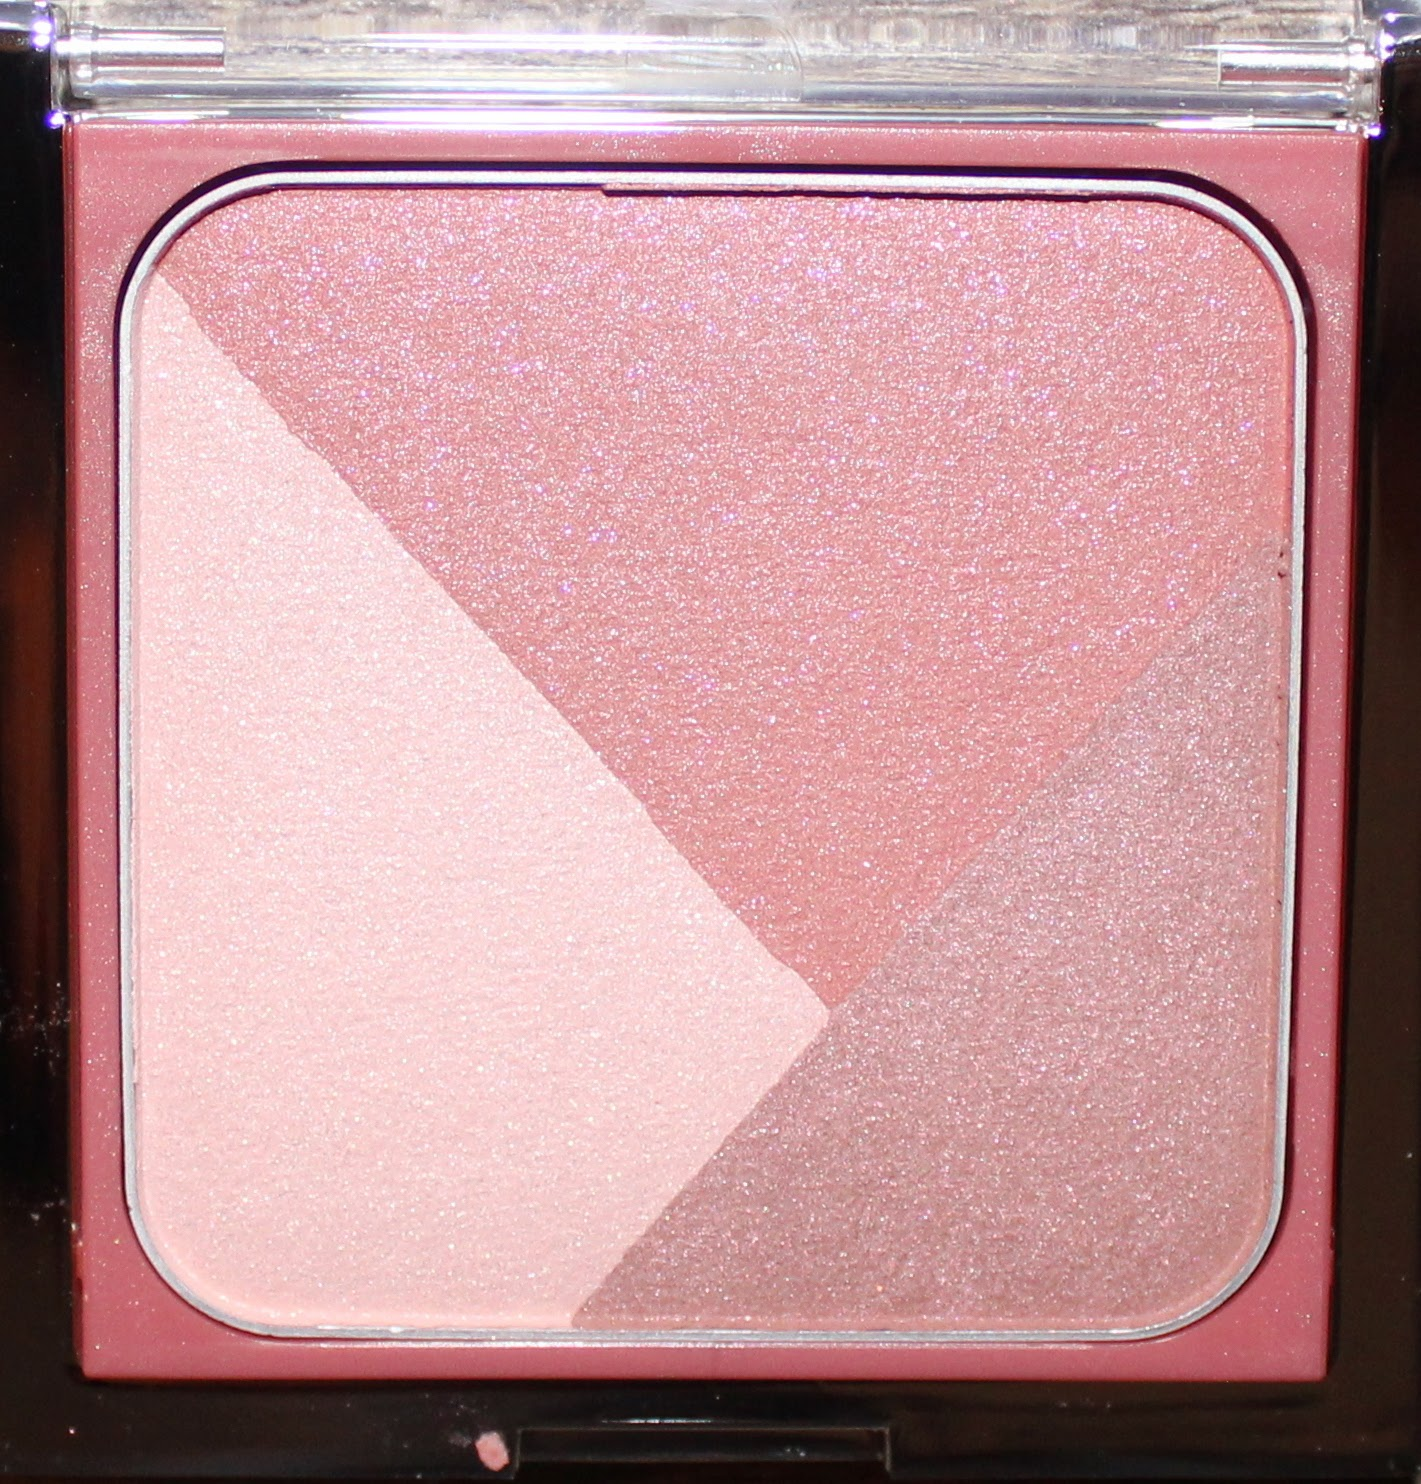 Clinique Sculptionary Cheek Contouring Palette in Defining Roses